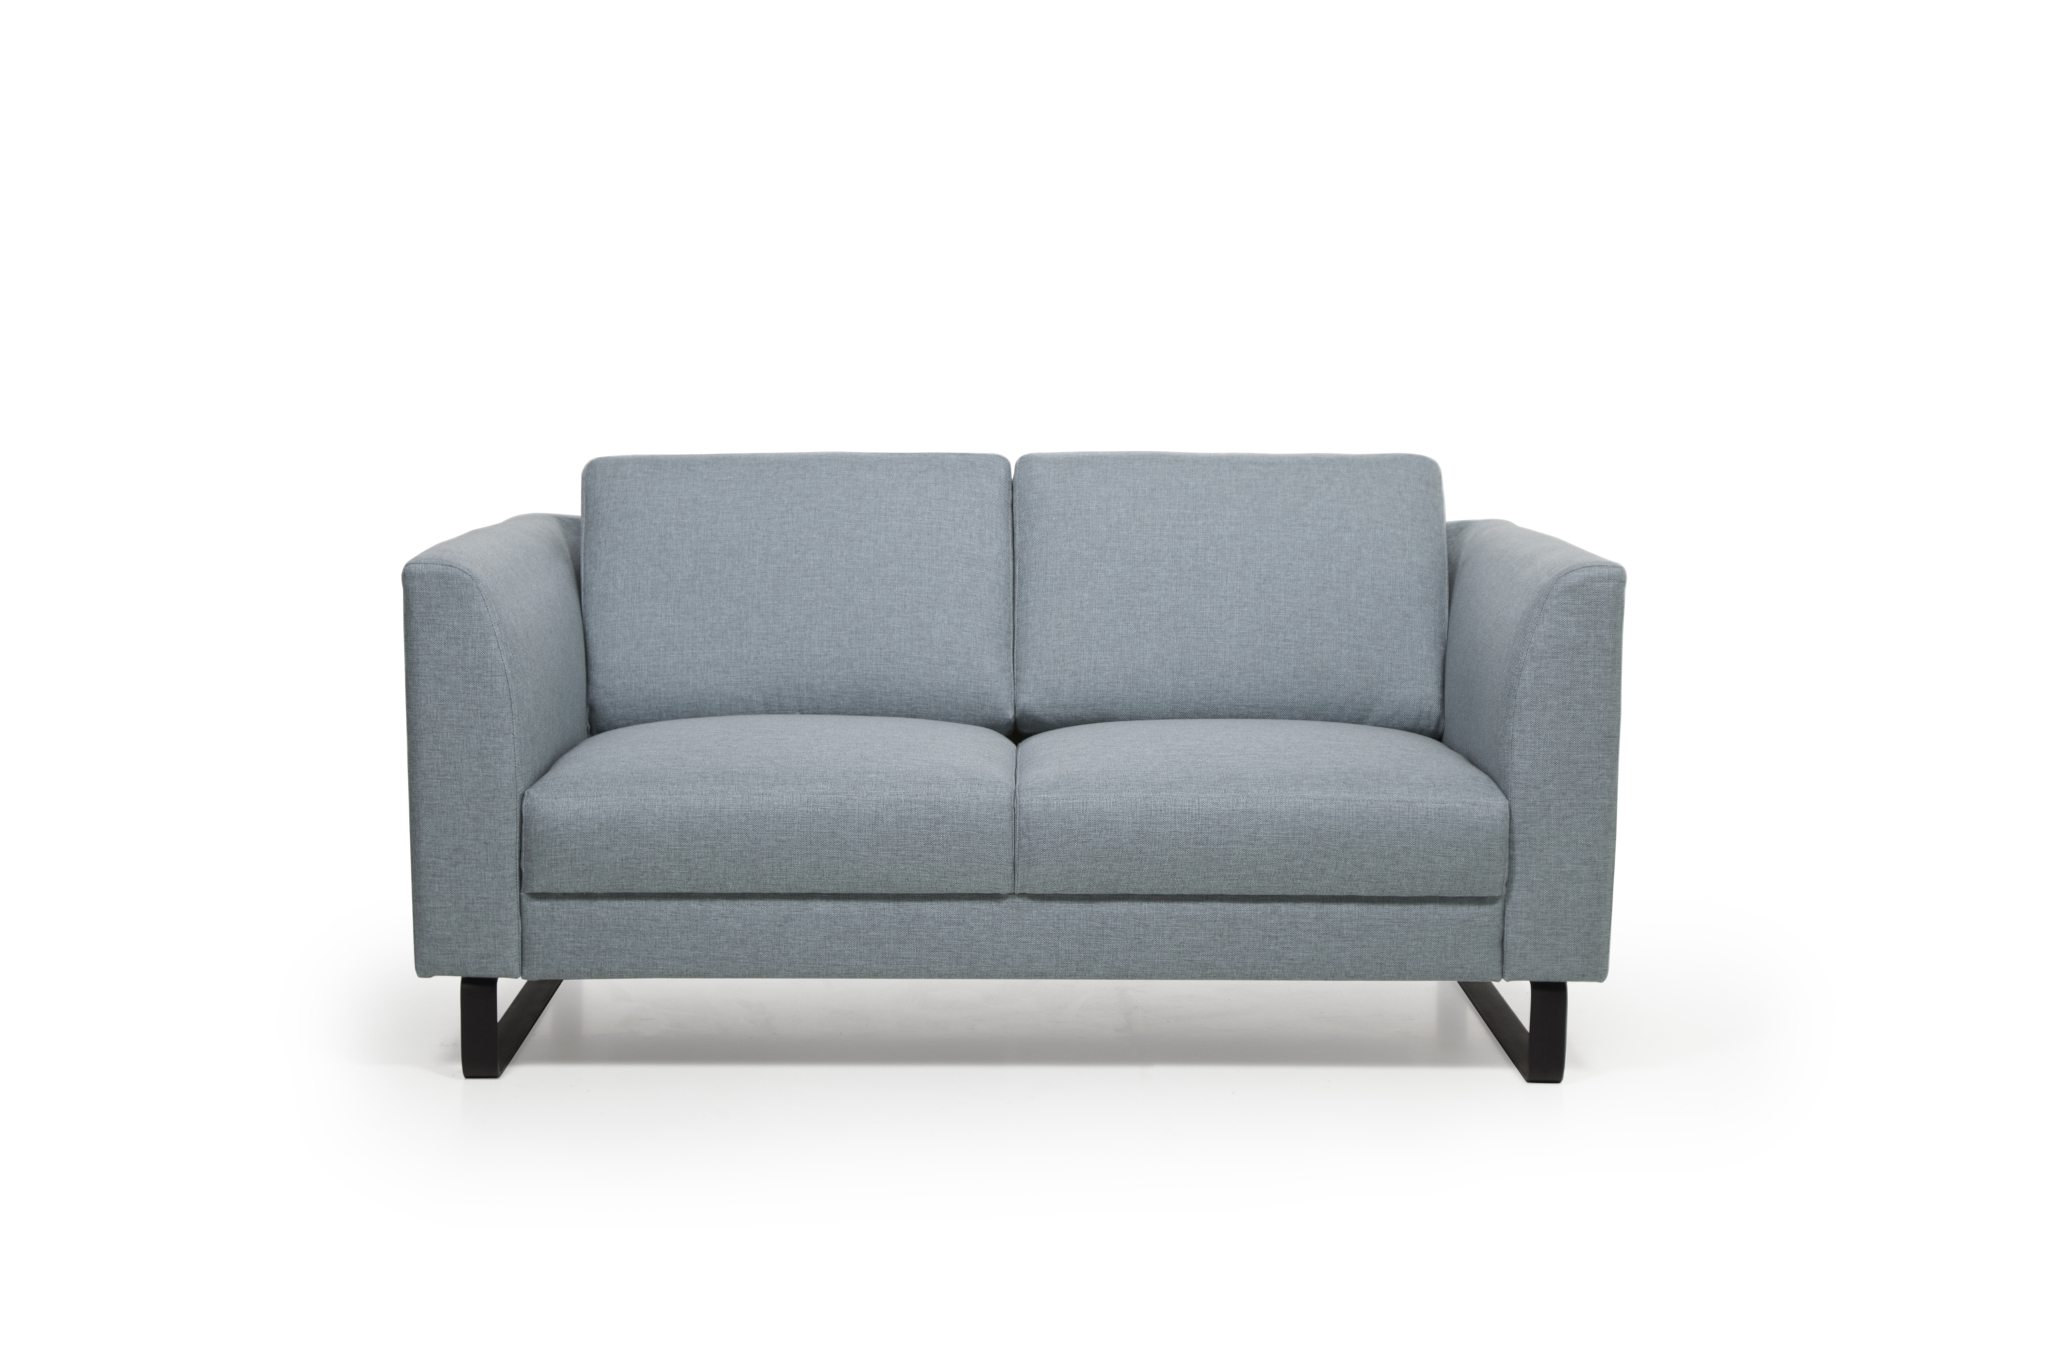 Sofa de una plaza awesome sillones cama de plaza with for Sofas una plaza baratos